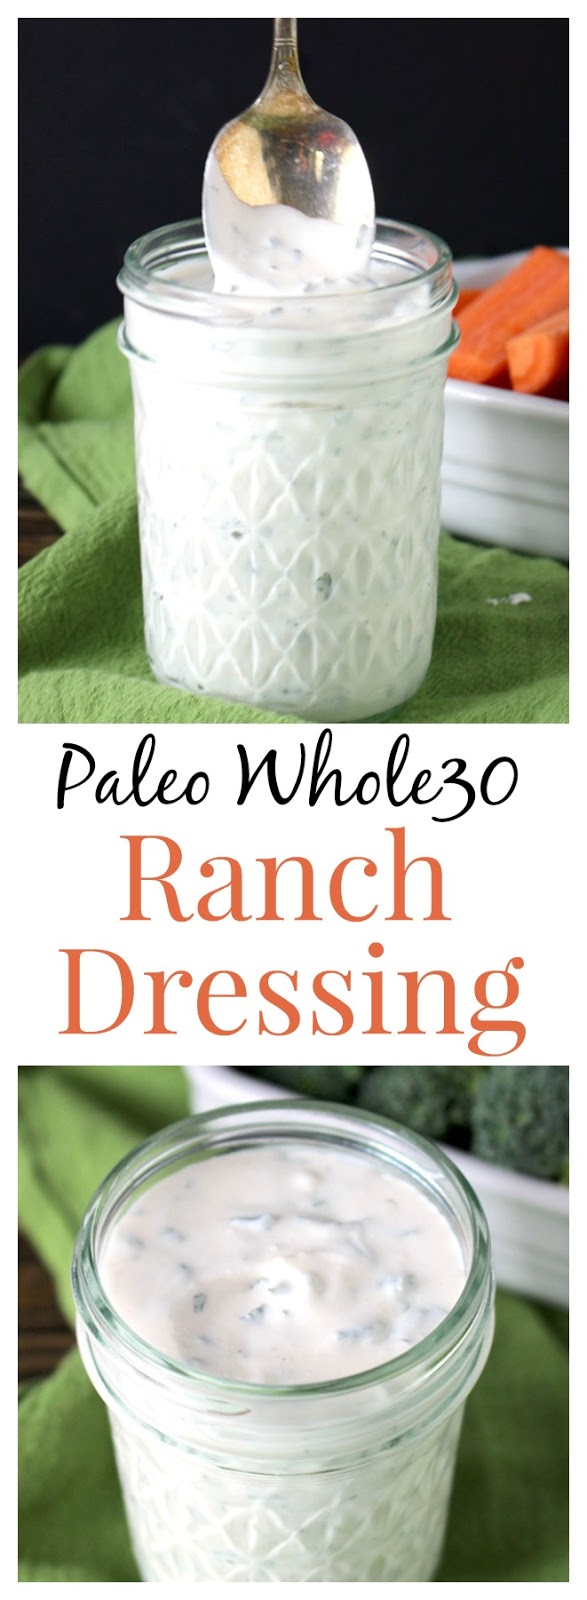 PALEO WHOLE30 RANCH DRESSING